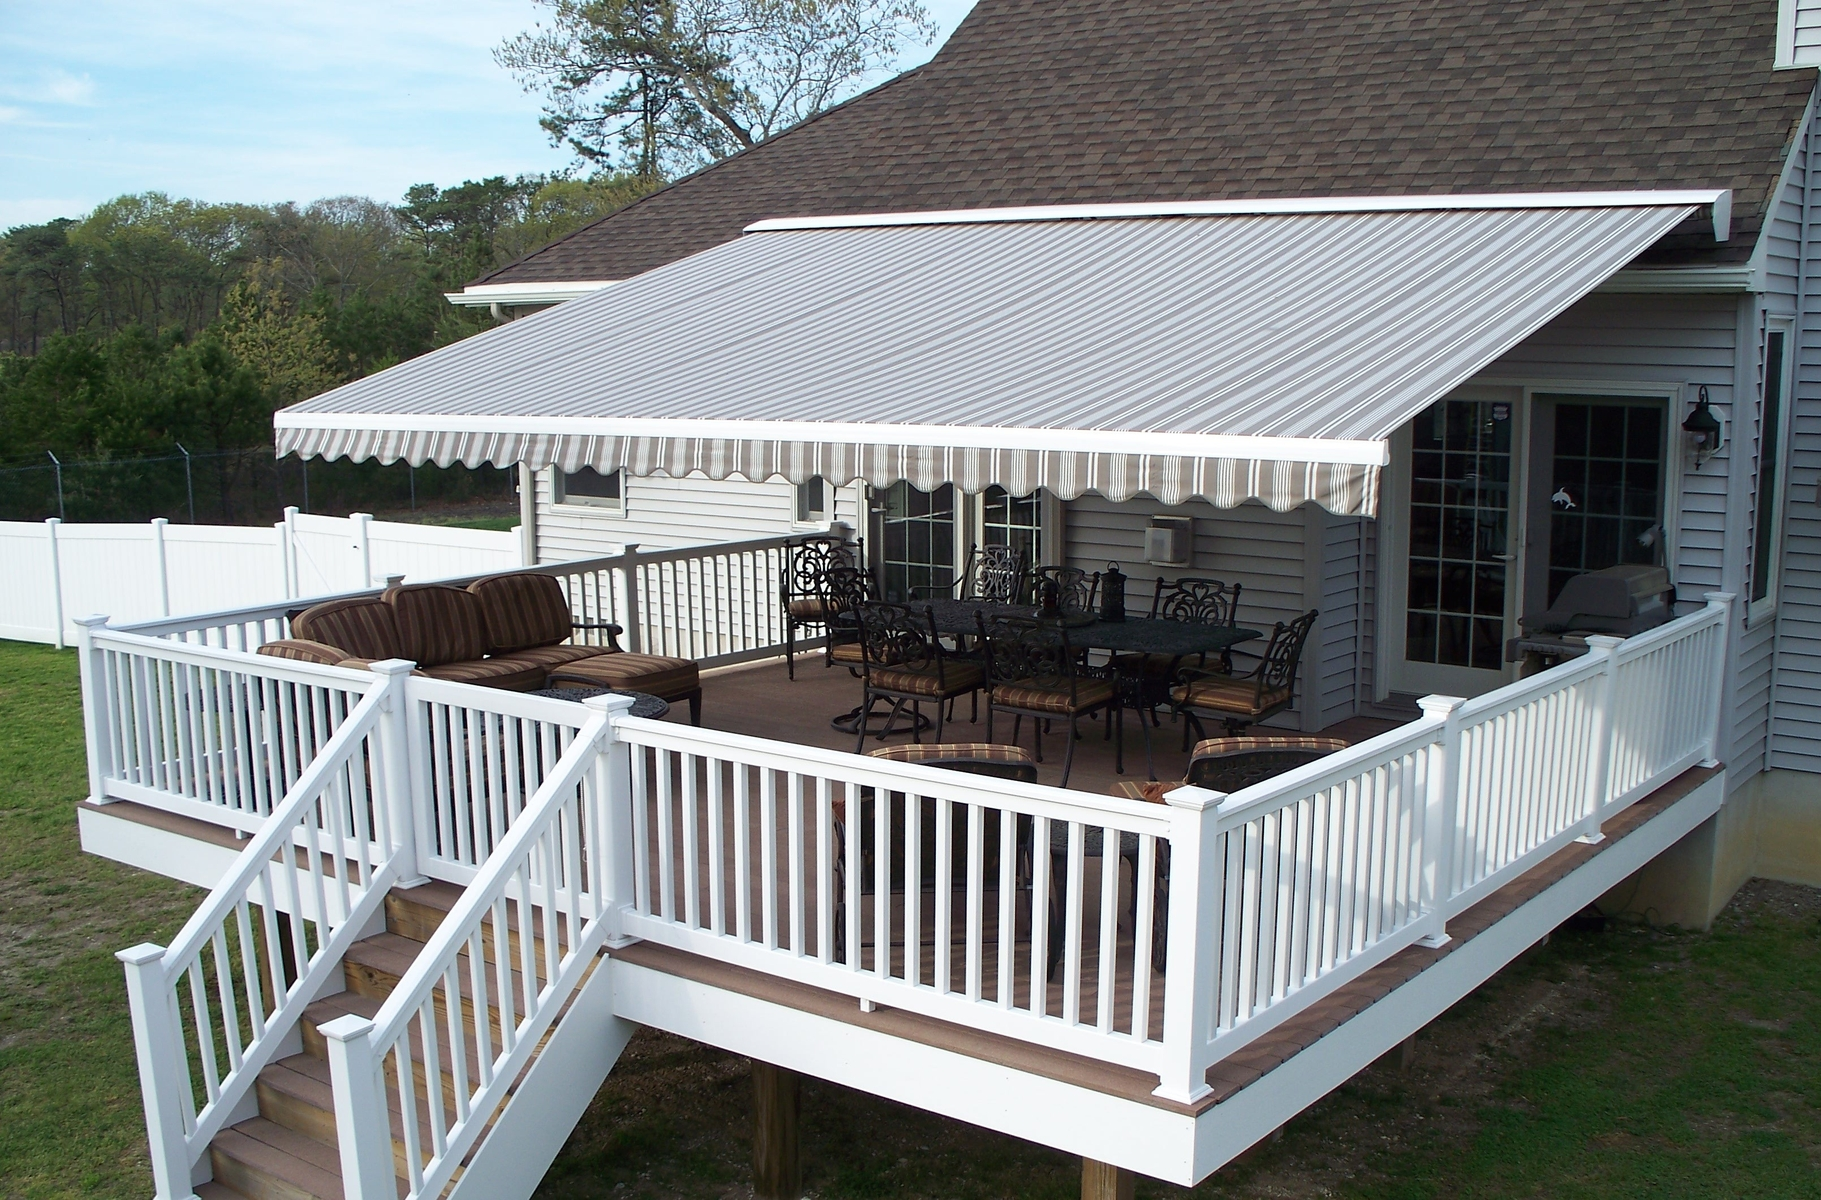 prices services of our dedicated about mt and is providing awning sunsetter us sunsetterawning at to solutions morris with competitive customers quality index awnings